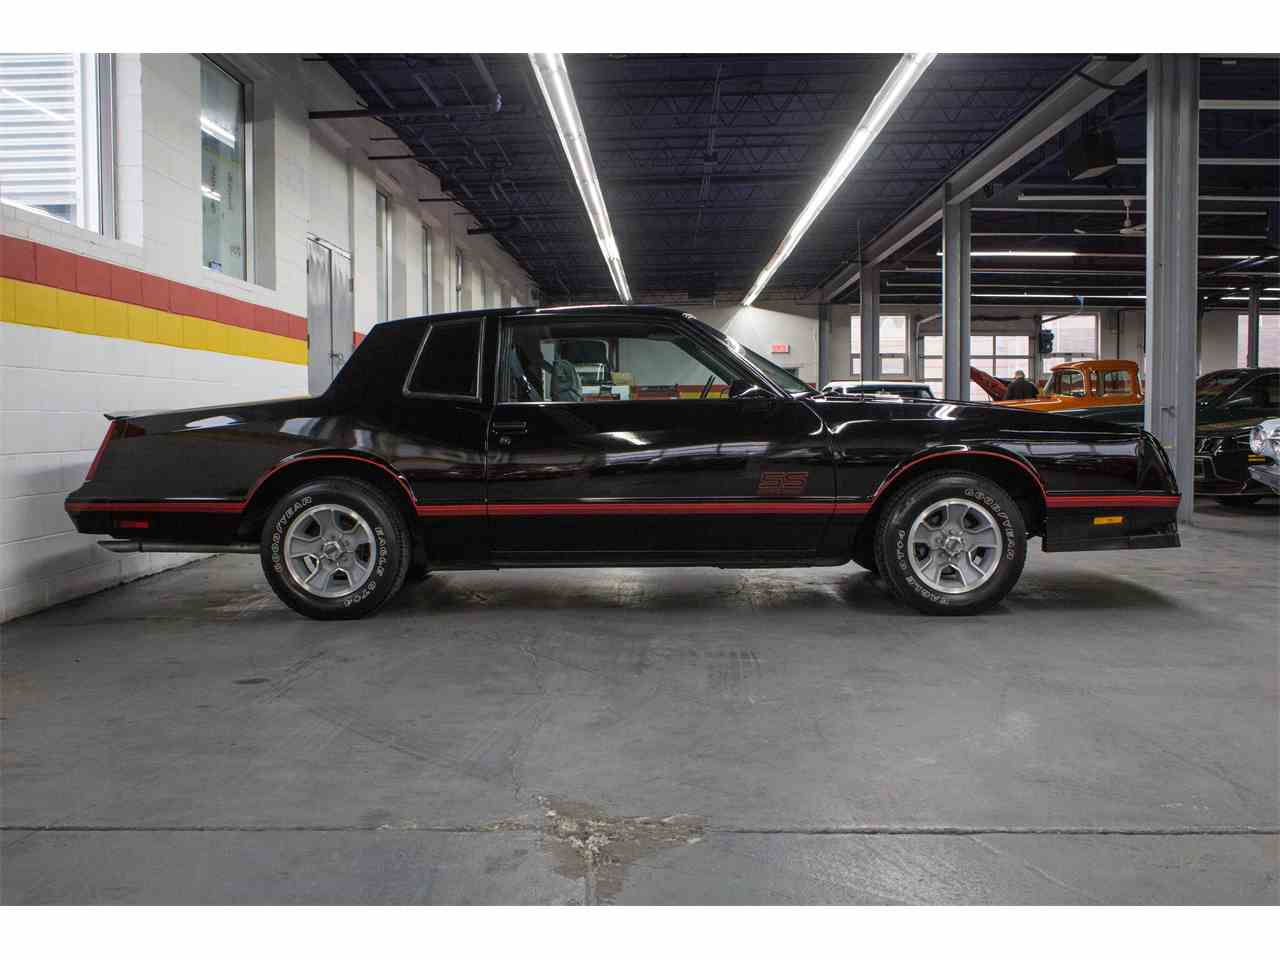 All Chevy 1988 chevrolet monte carlo ss for sale : 1988 Chevrolet Monte Carlo SS for Sale | ClassicCars.com | CC-1040031